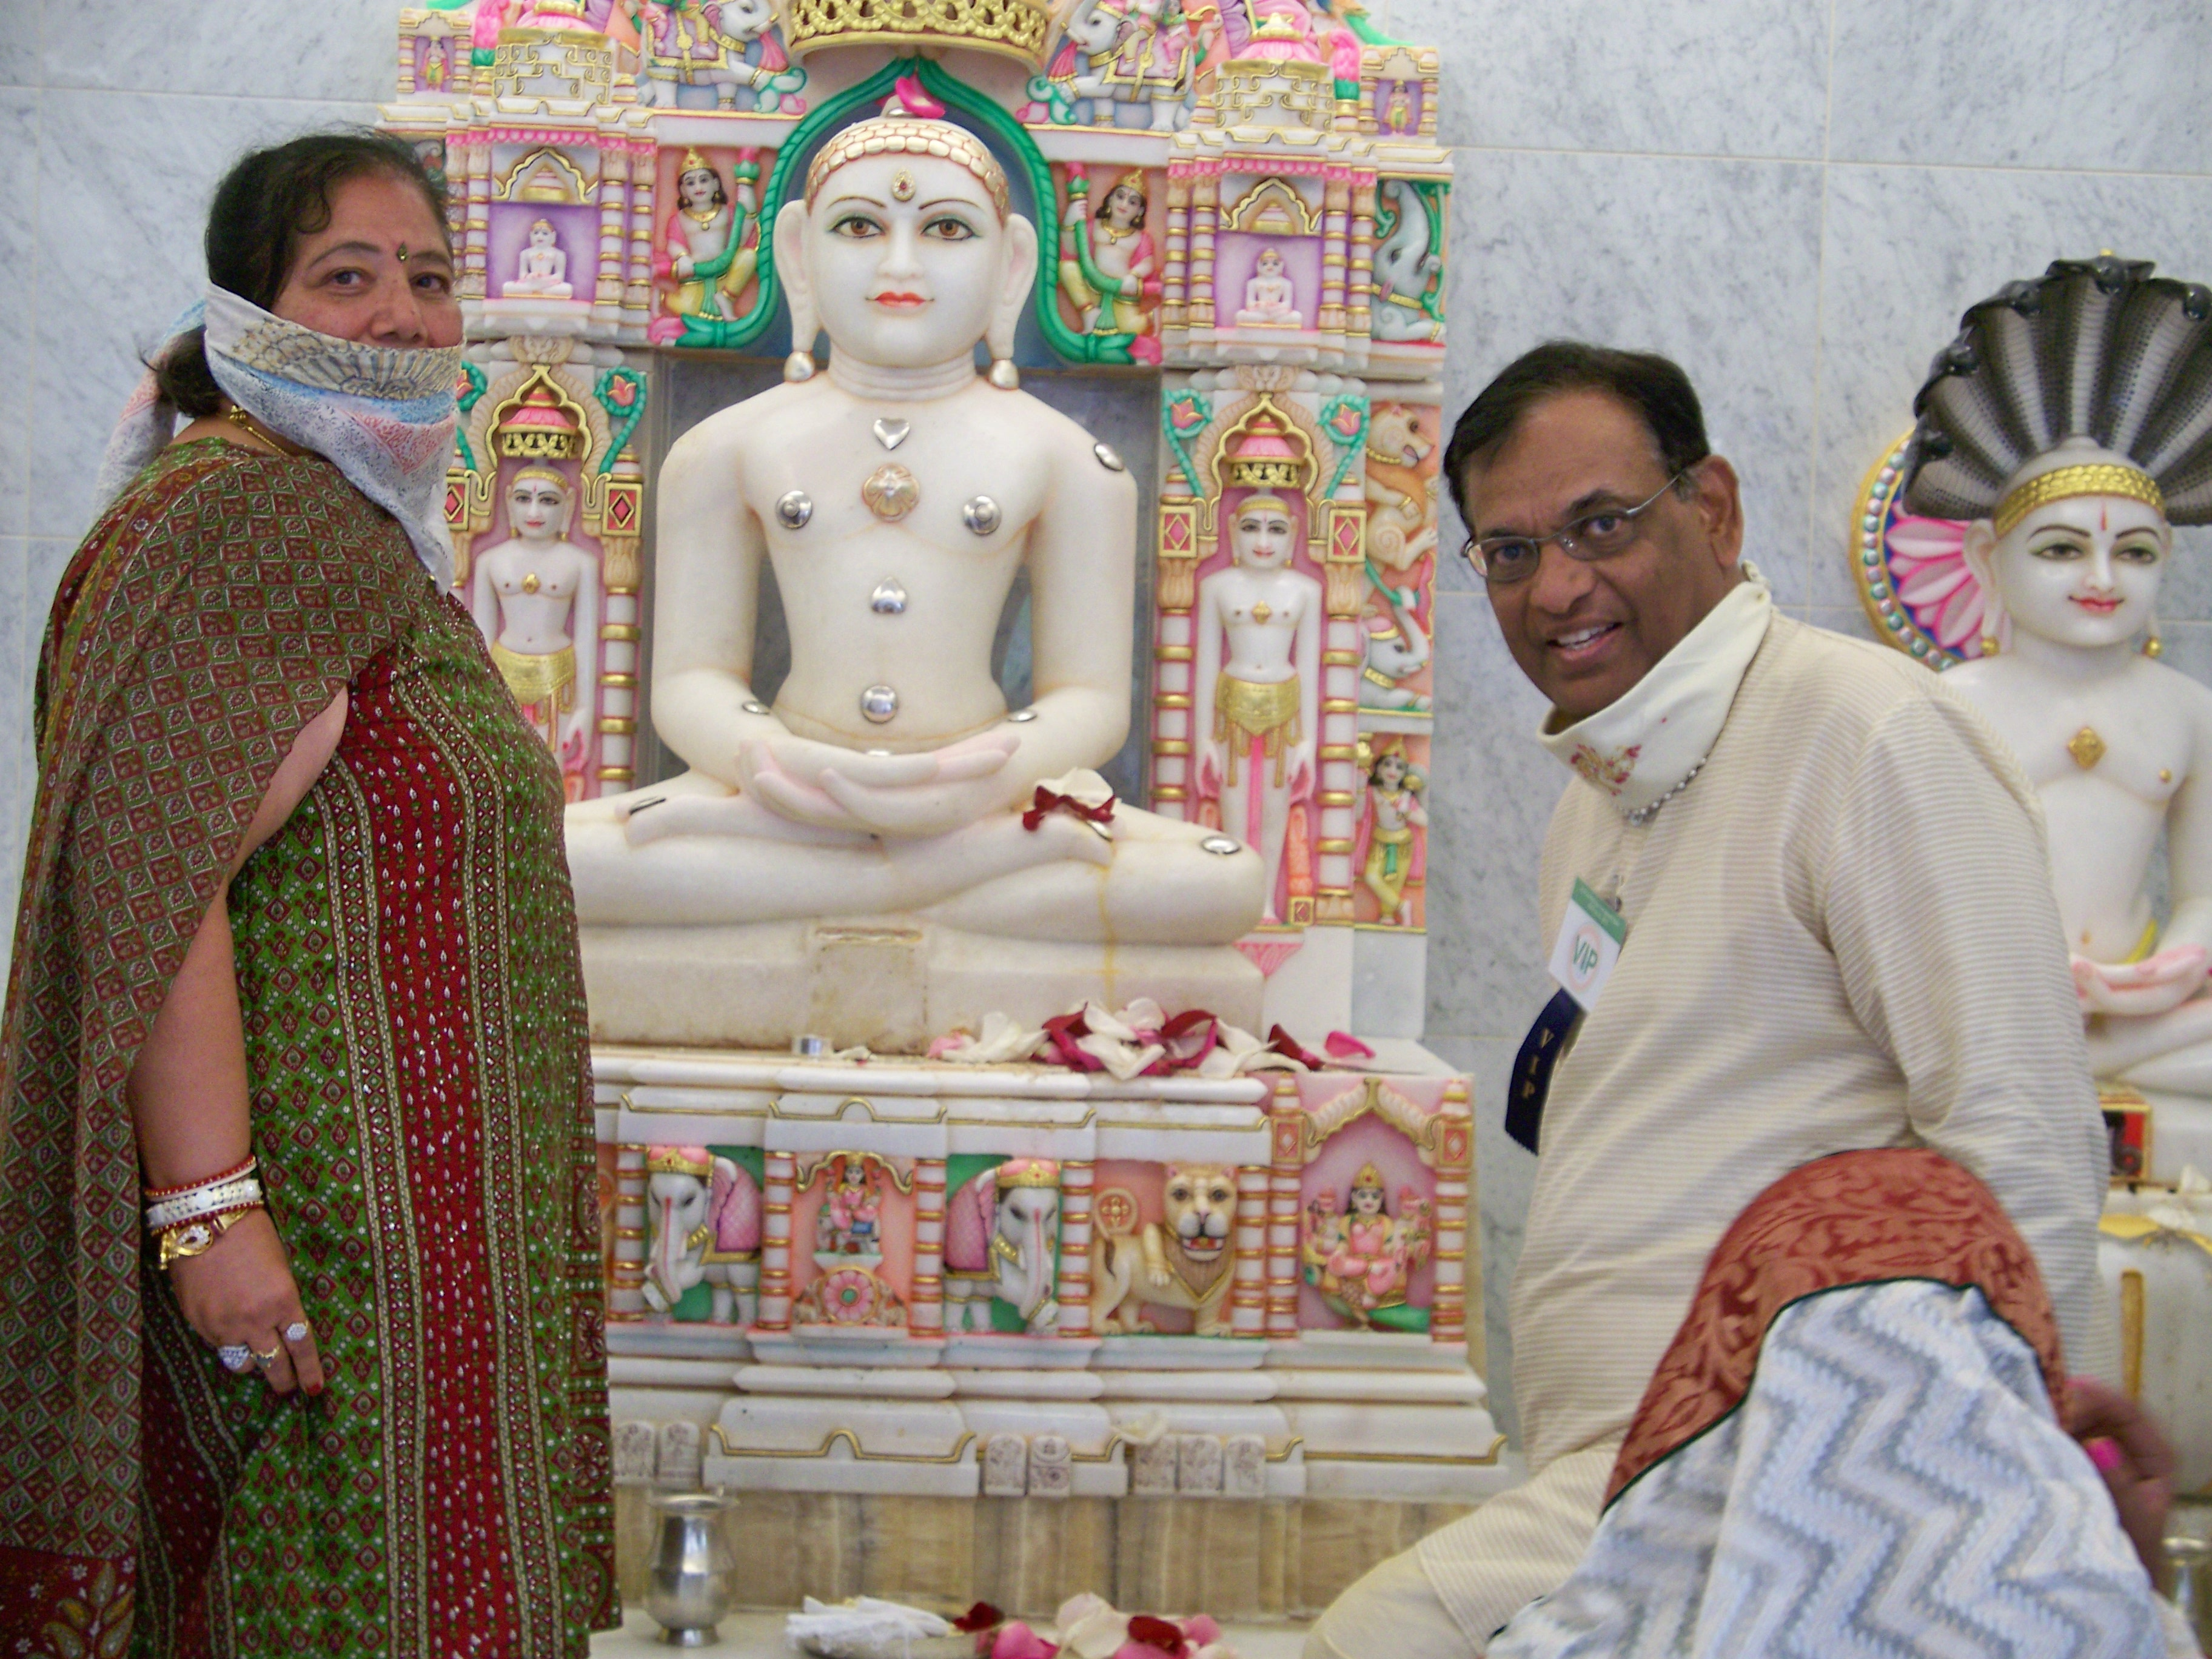 http://www.herenow4u.net/fileadmin/v3media/pics/organisations/Jain_Center_of_Central_Ohio/PRATISHTHA_MAHOTSAV/jcoco_-_Dinesh_Vora.jpg